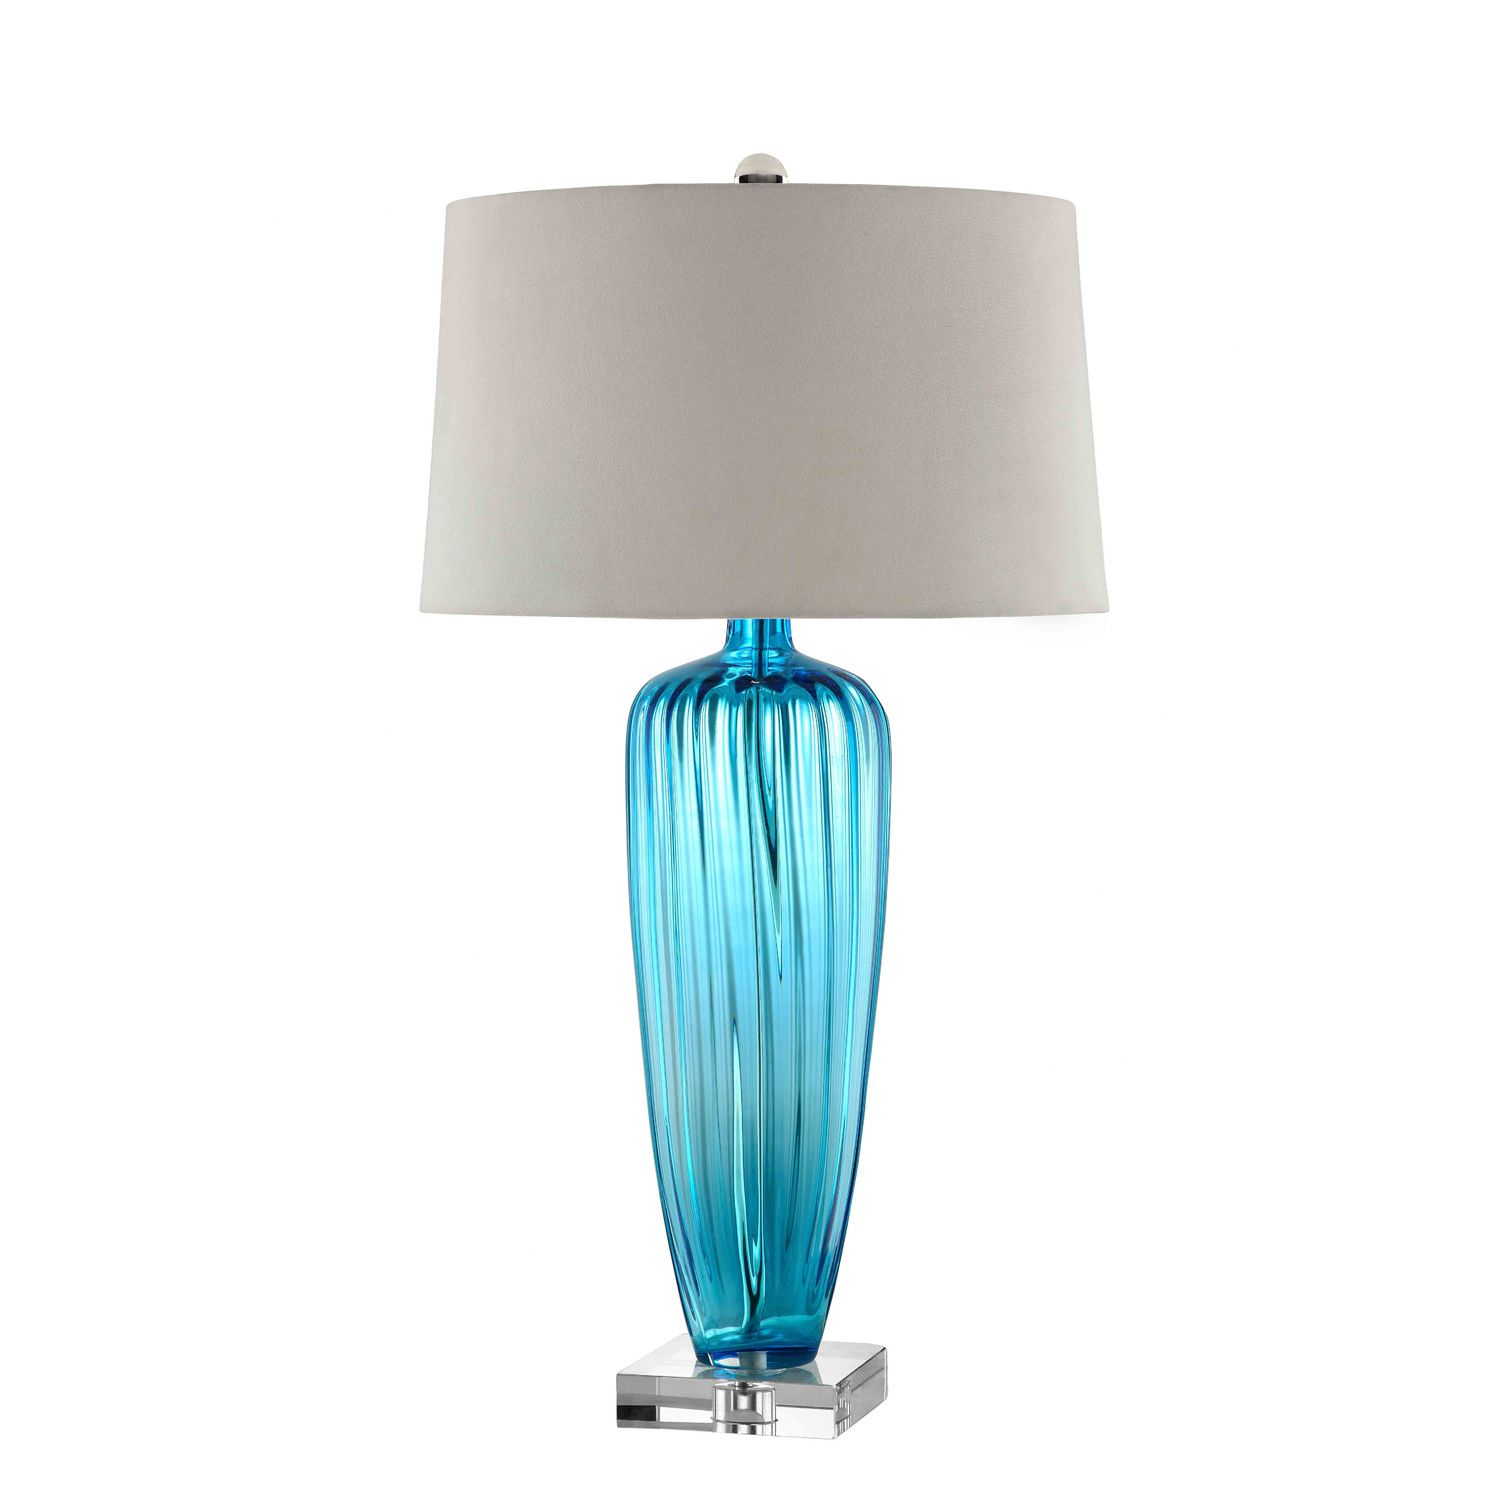 Blue glass table lamps  Stein World Duncombe Park Table Lamp with Empire Shade  lamps